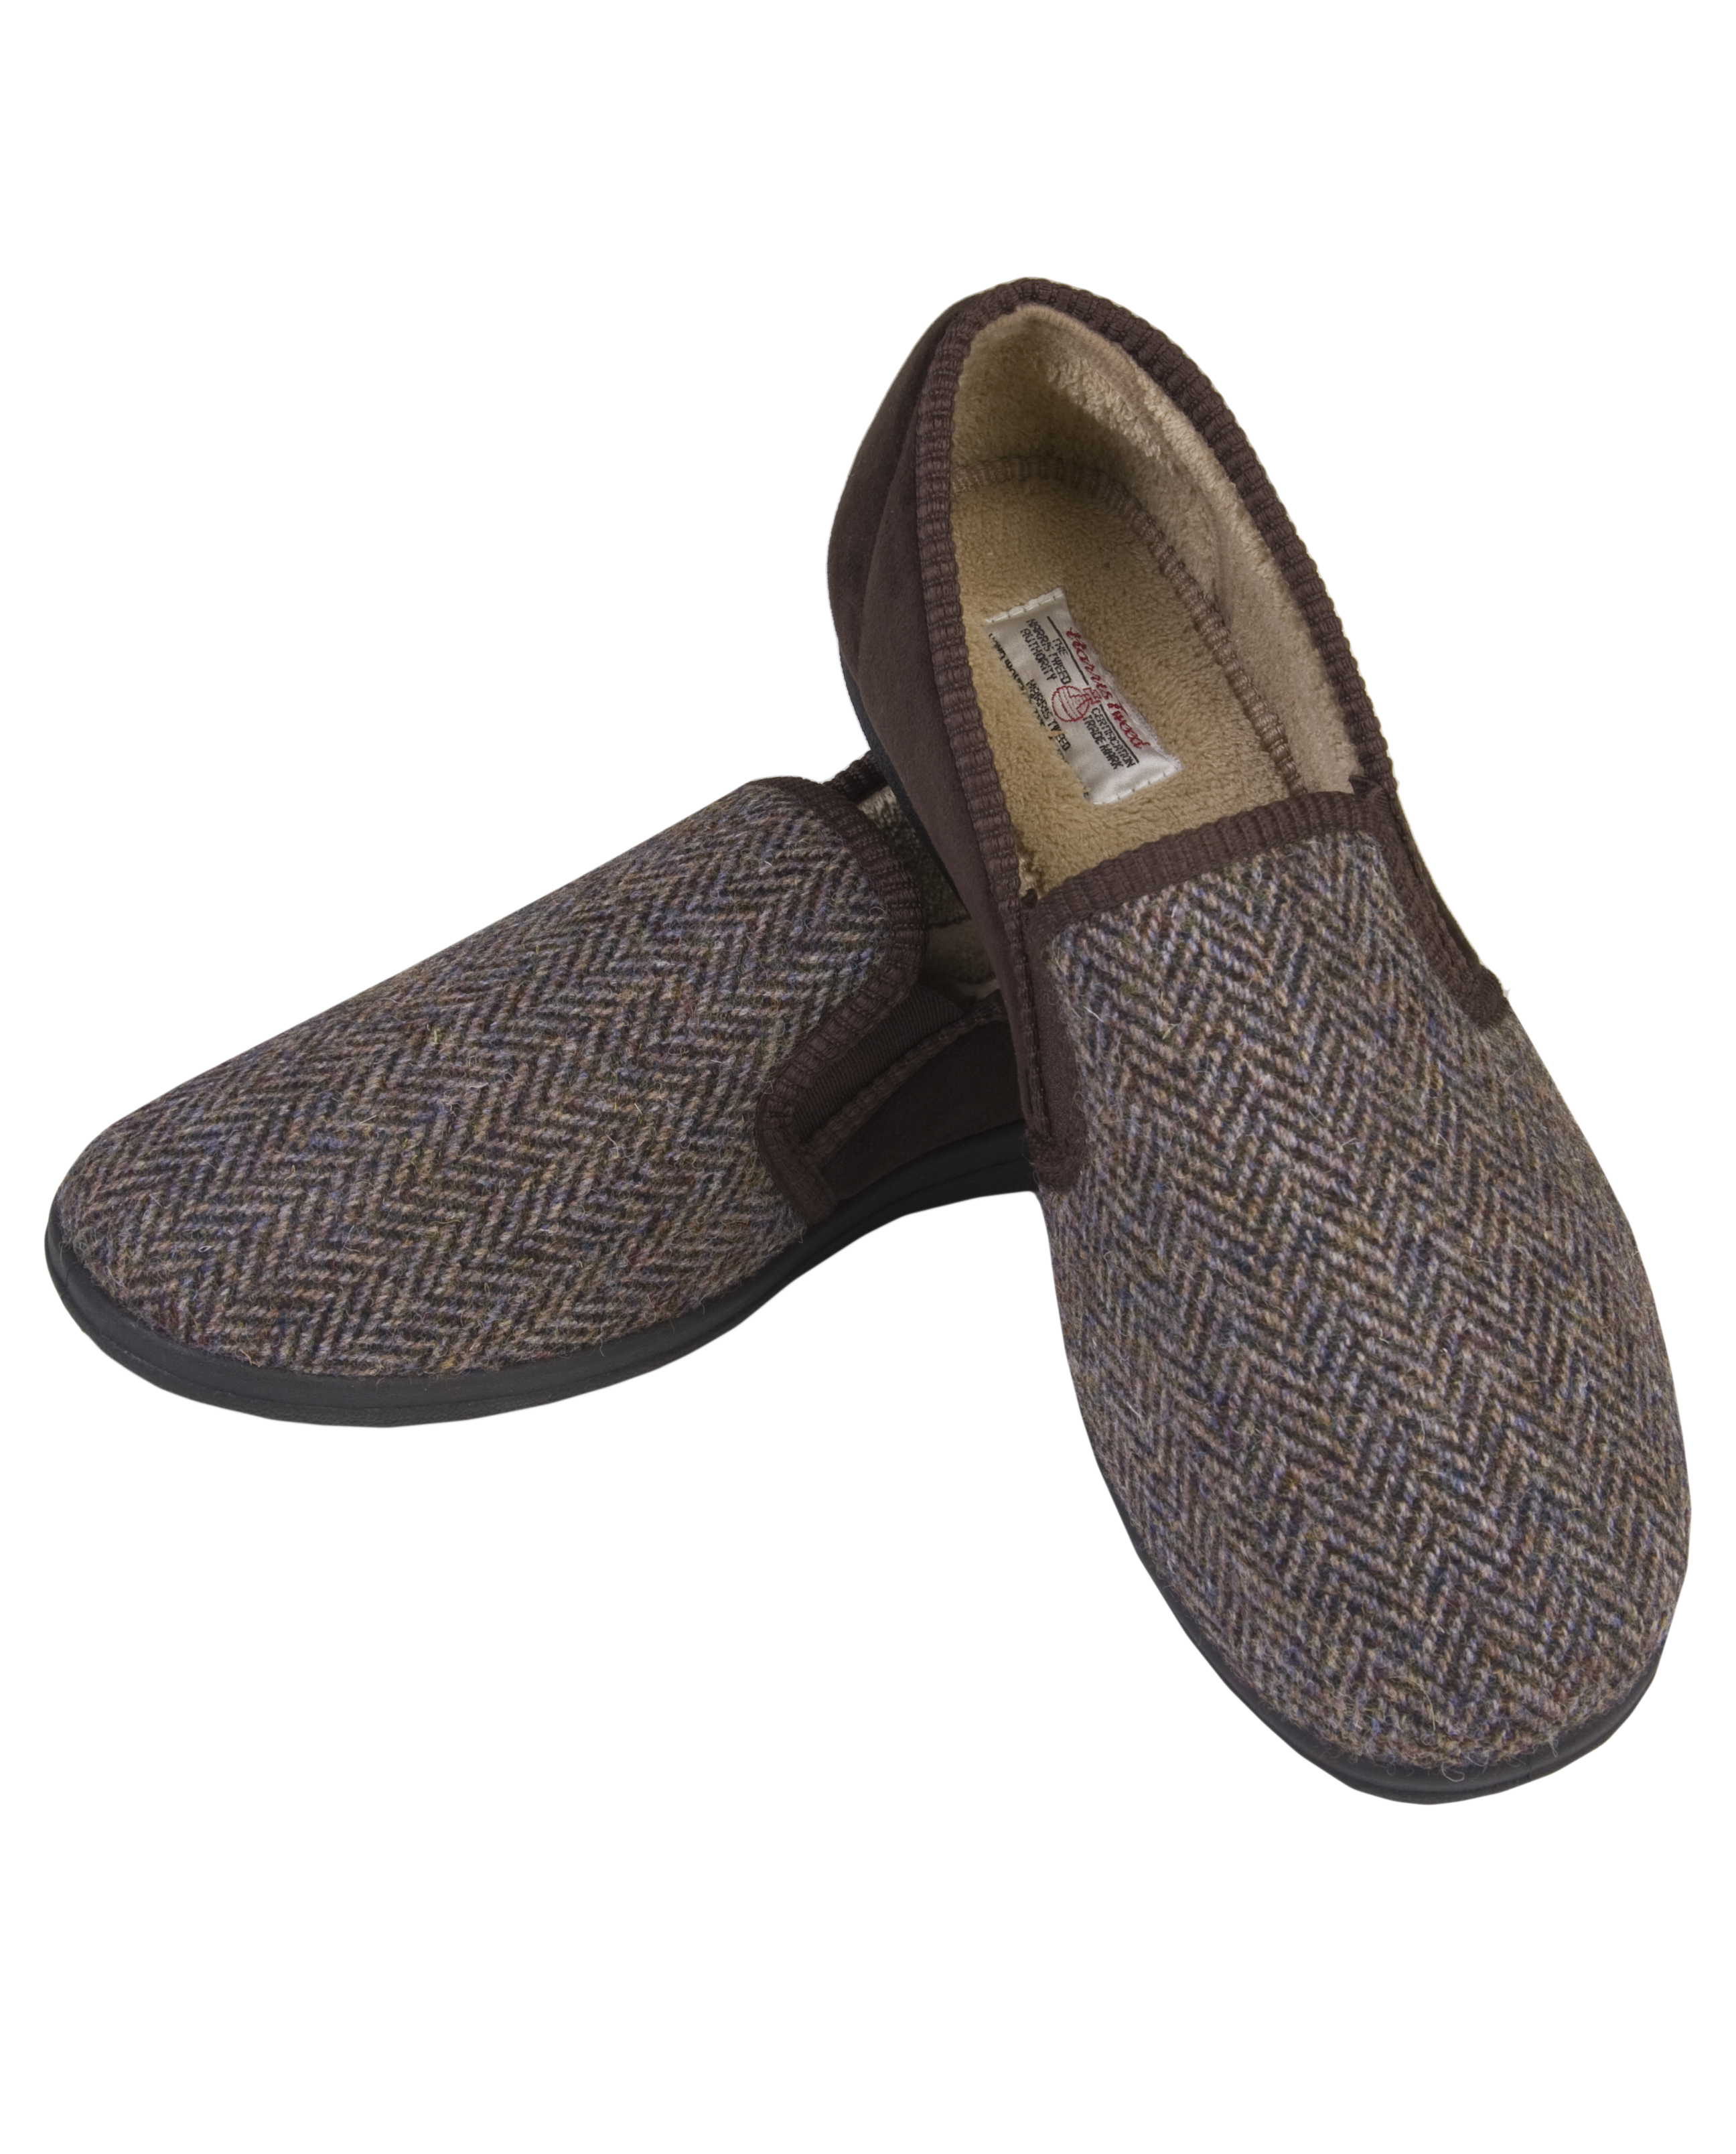 The Edinburgh Woollen Mill Harris Tweed Trapper Hat And Slippers Pampered Presents